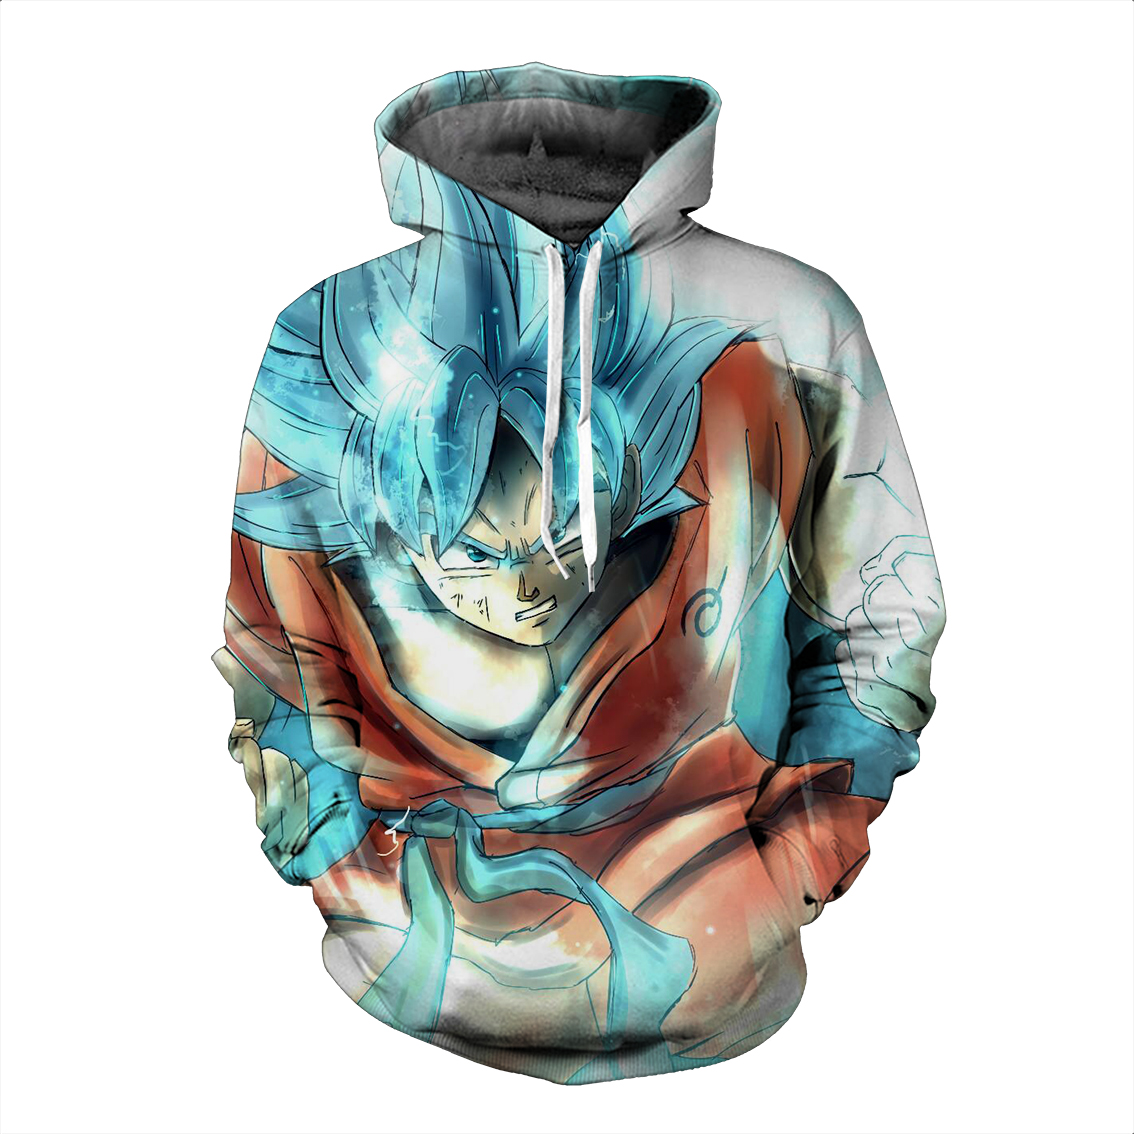 online hobbies australia with Dragon Ball Z Clothes Games Vegetto Blue Dragon Ball Z Hoodies 3d Hoodies Pullovers Sportswear Hooded Sweatshirts Mens Sleeve Son Goku Hoode Dragon Ball Z on 446700856763566893 likewise Laurasingleton1 wordpress together with Dragon Ball Z Clothes Games Vegetto Blue Dragon Ball Z Hoodies 3d Hoodies Pullovers Sportswear Hooded Sweatshirts Mens Sleeve Son Goku Hoode Dragon Ball Z besides 10K  petition Search Hottest Ginger Pets Running Too also Shs 2x2x2 Mini Cube Rubiks Magic Cube Puzzle Toy Black.